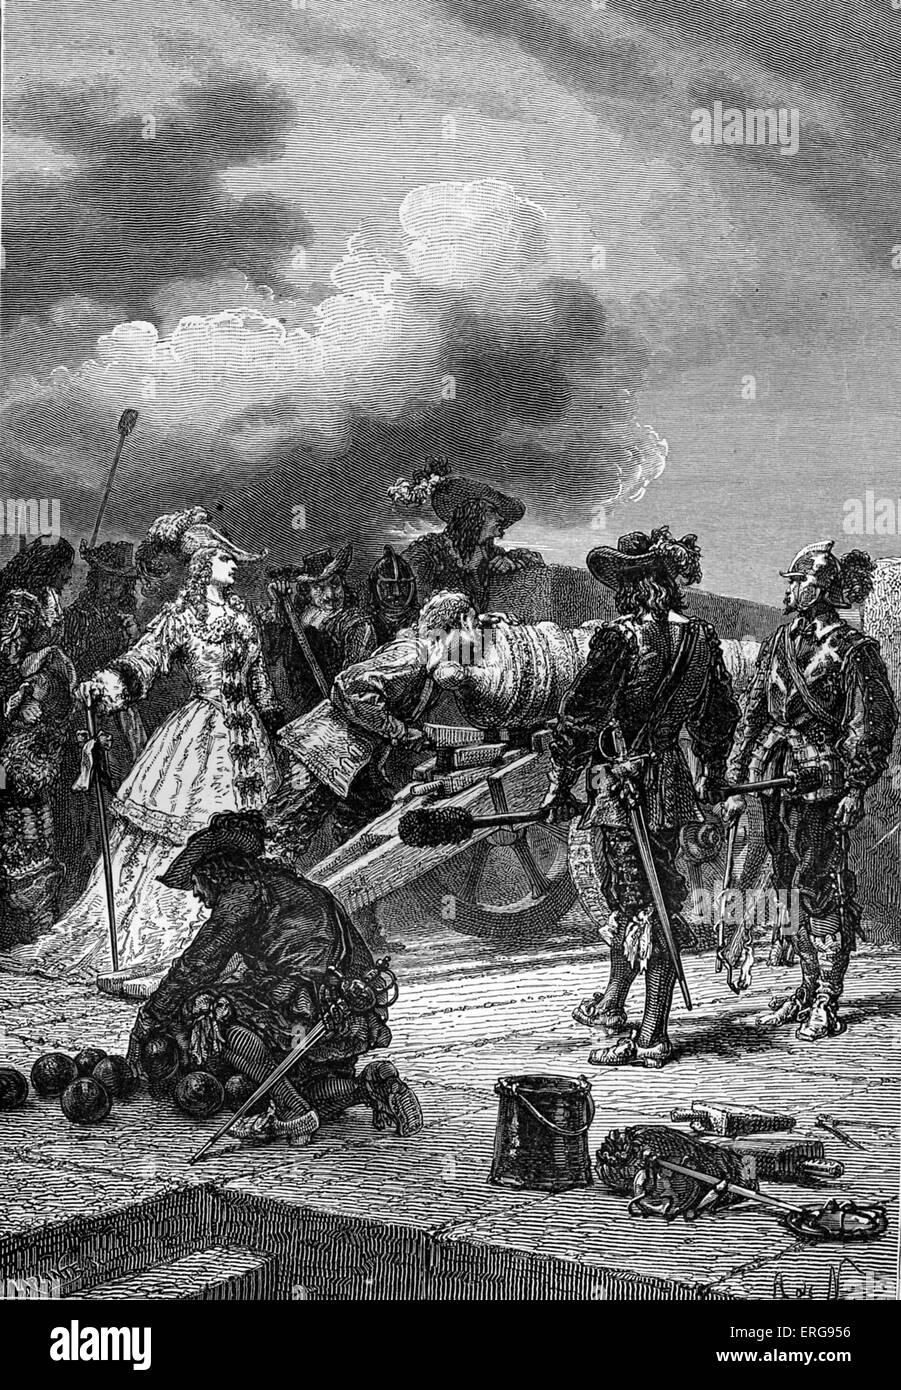 Marie d'Orléans commanding during the Fronde - civil war in France, occurring in the midst of the Franco - Stock Image